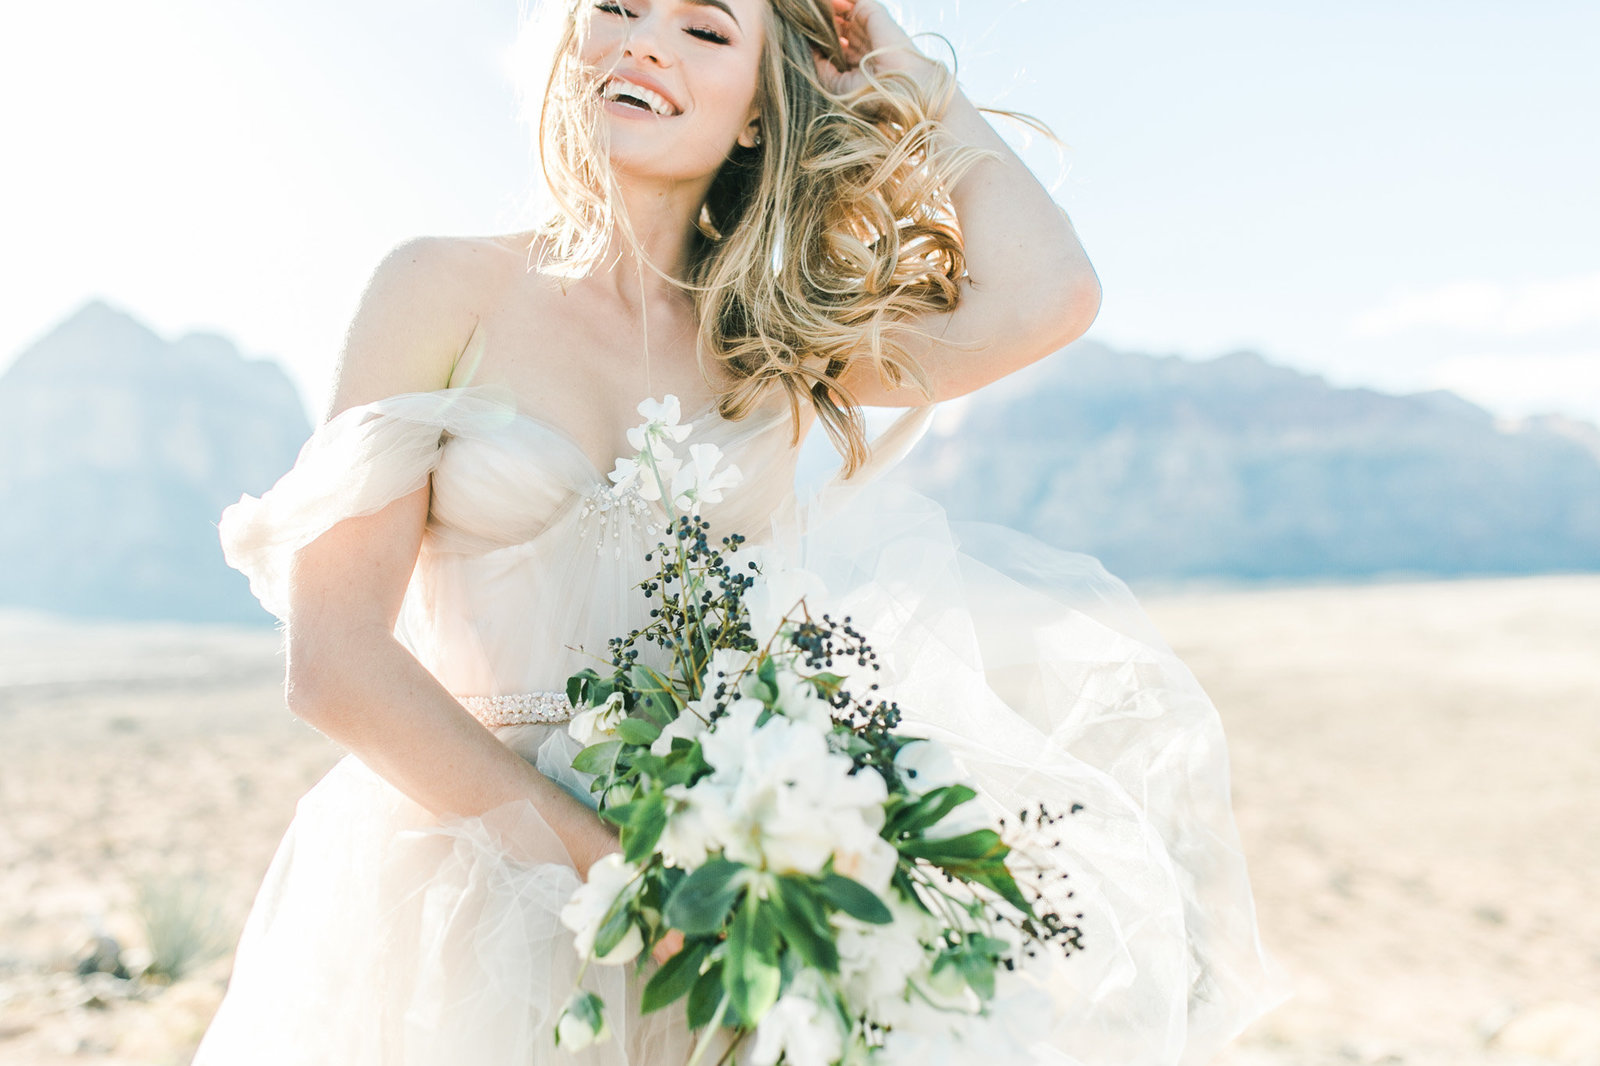 Mandy-Ford-Photography-Las-Vegas-Wedding-Editorial-45